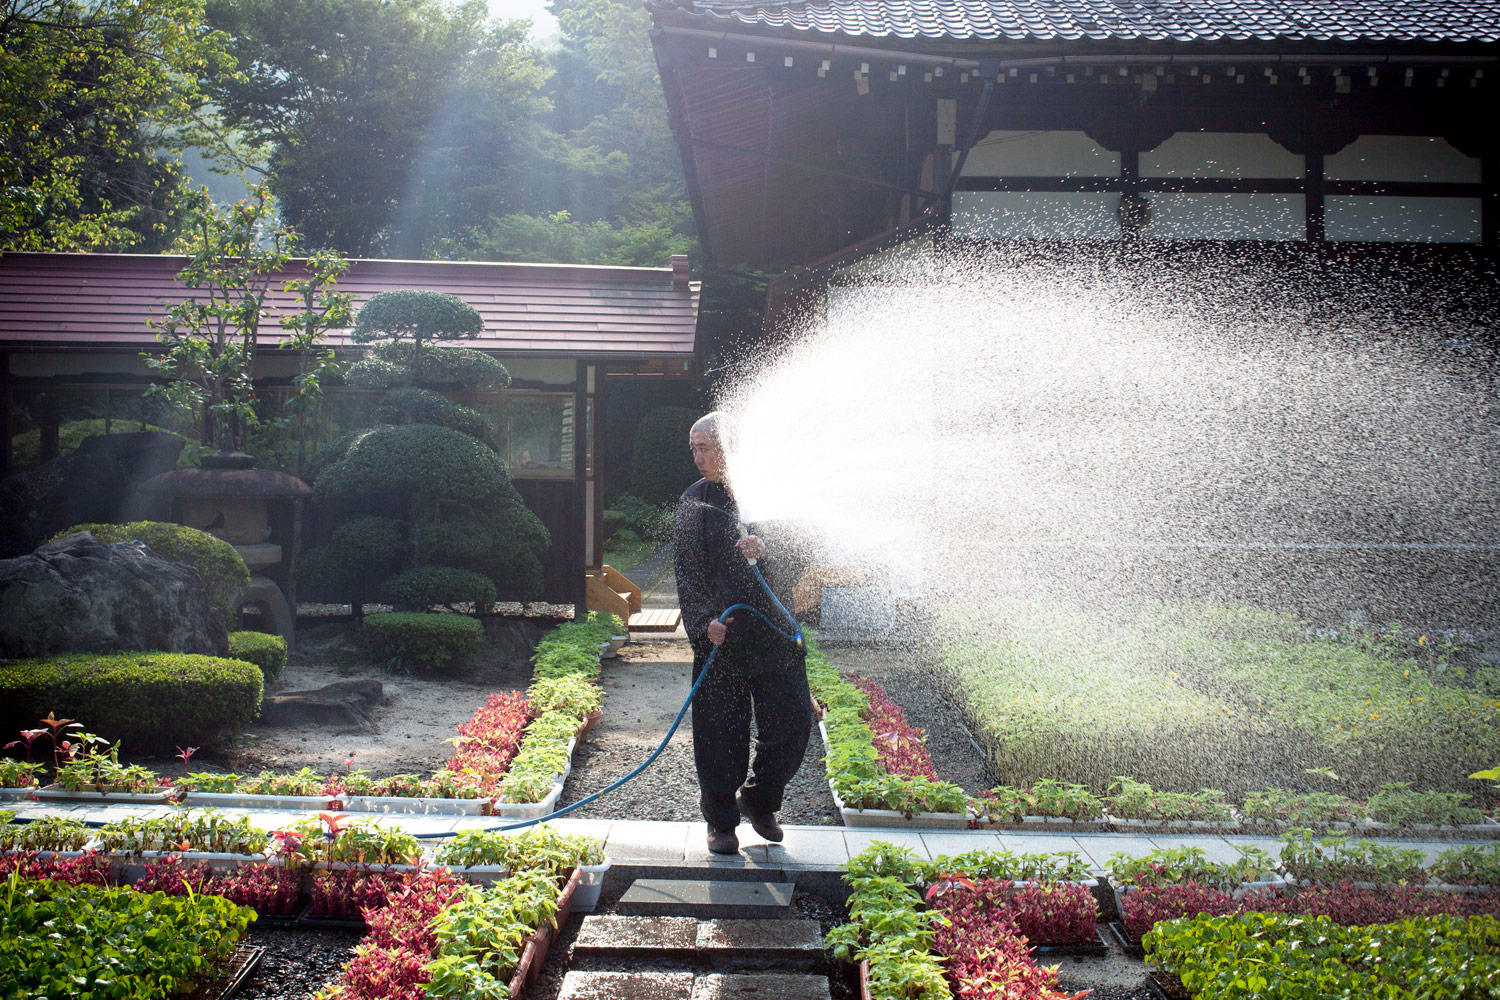 Kouyu Abe tends his garden in Fukushima August 13, 2011. Abe, a Jyoen Temple priest, grows sunflowers and donates them to the community, helping decontaminate radioactive soil.